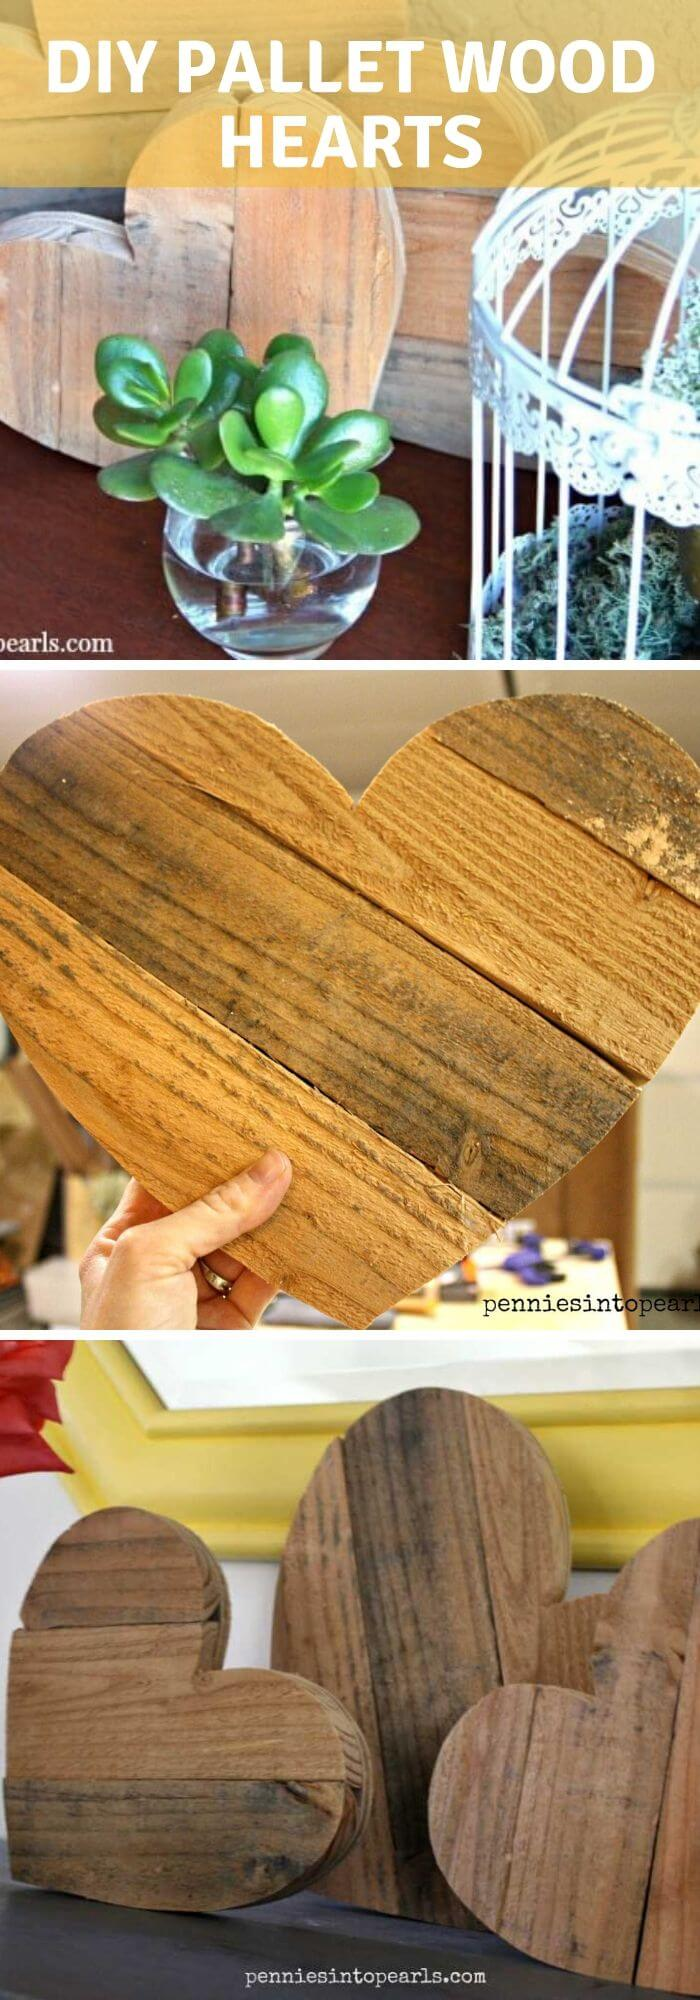 The anniversary heart sets - DIY Rustic Wood Heart Ideas & Projects